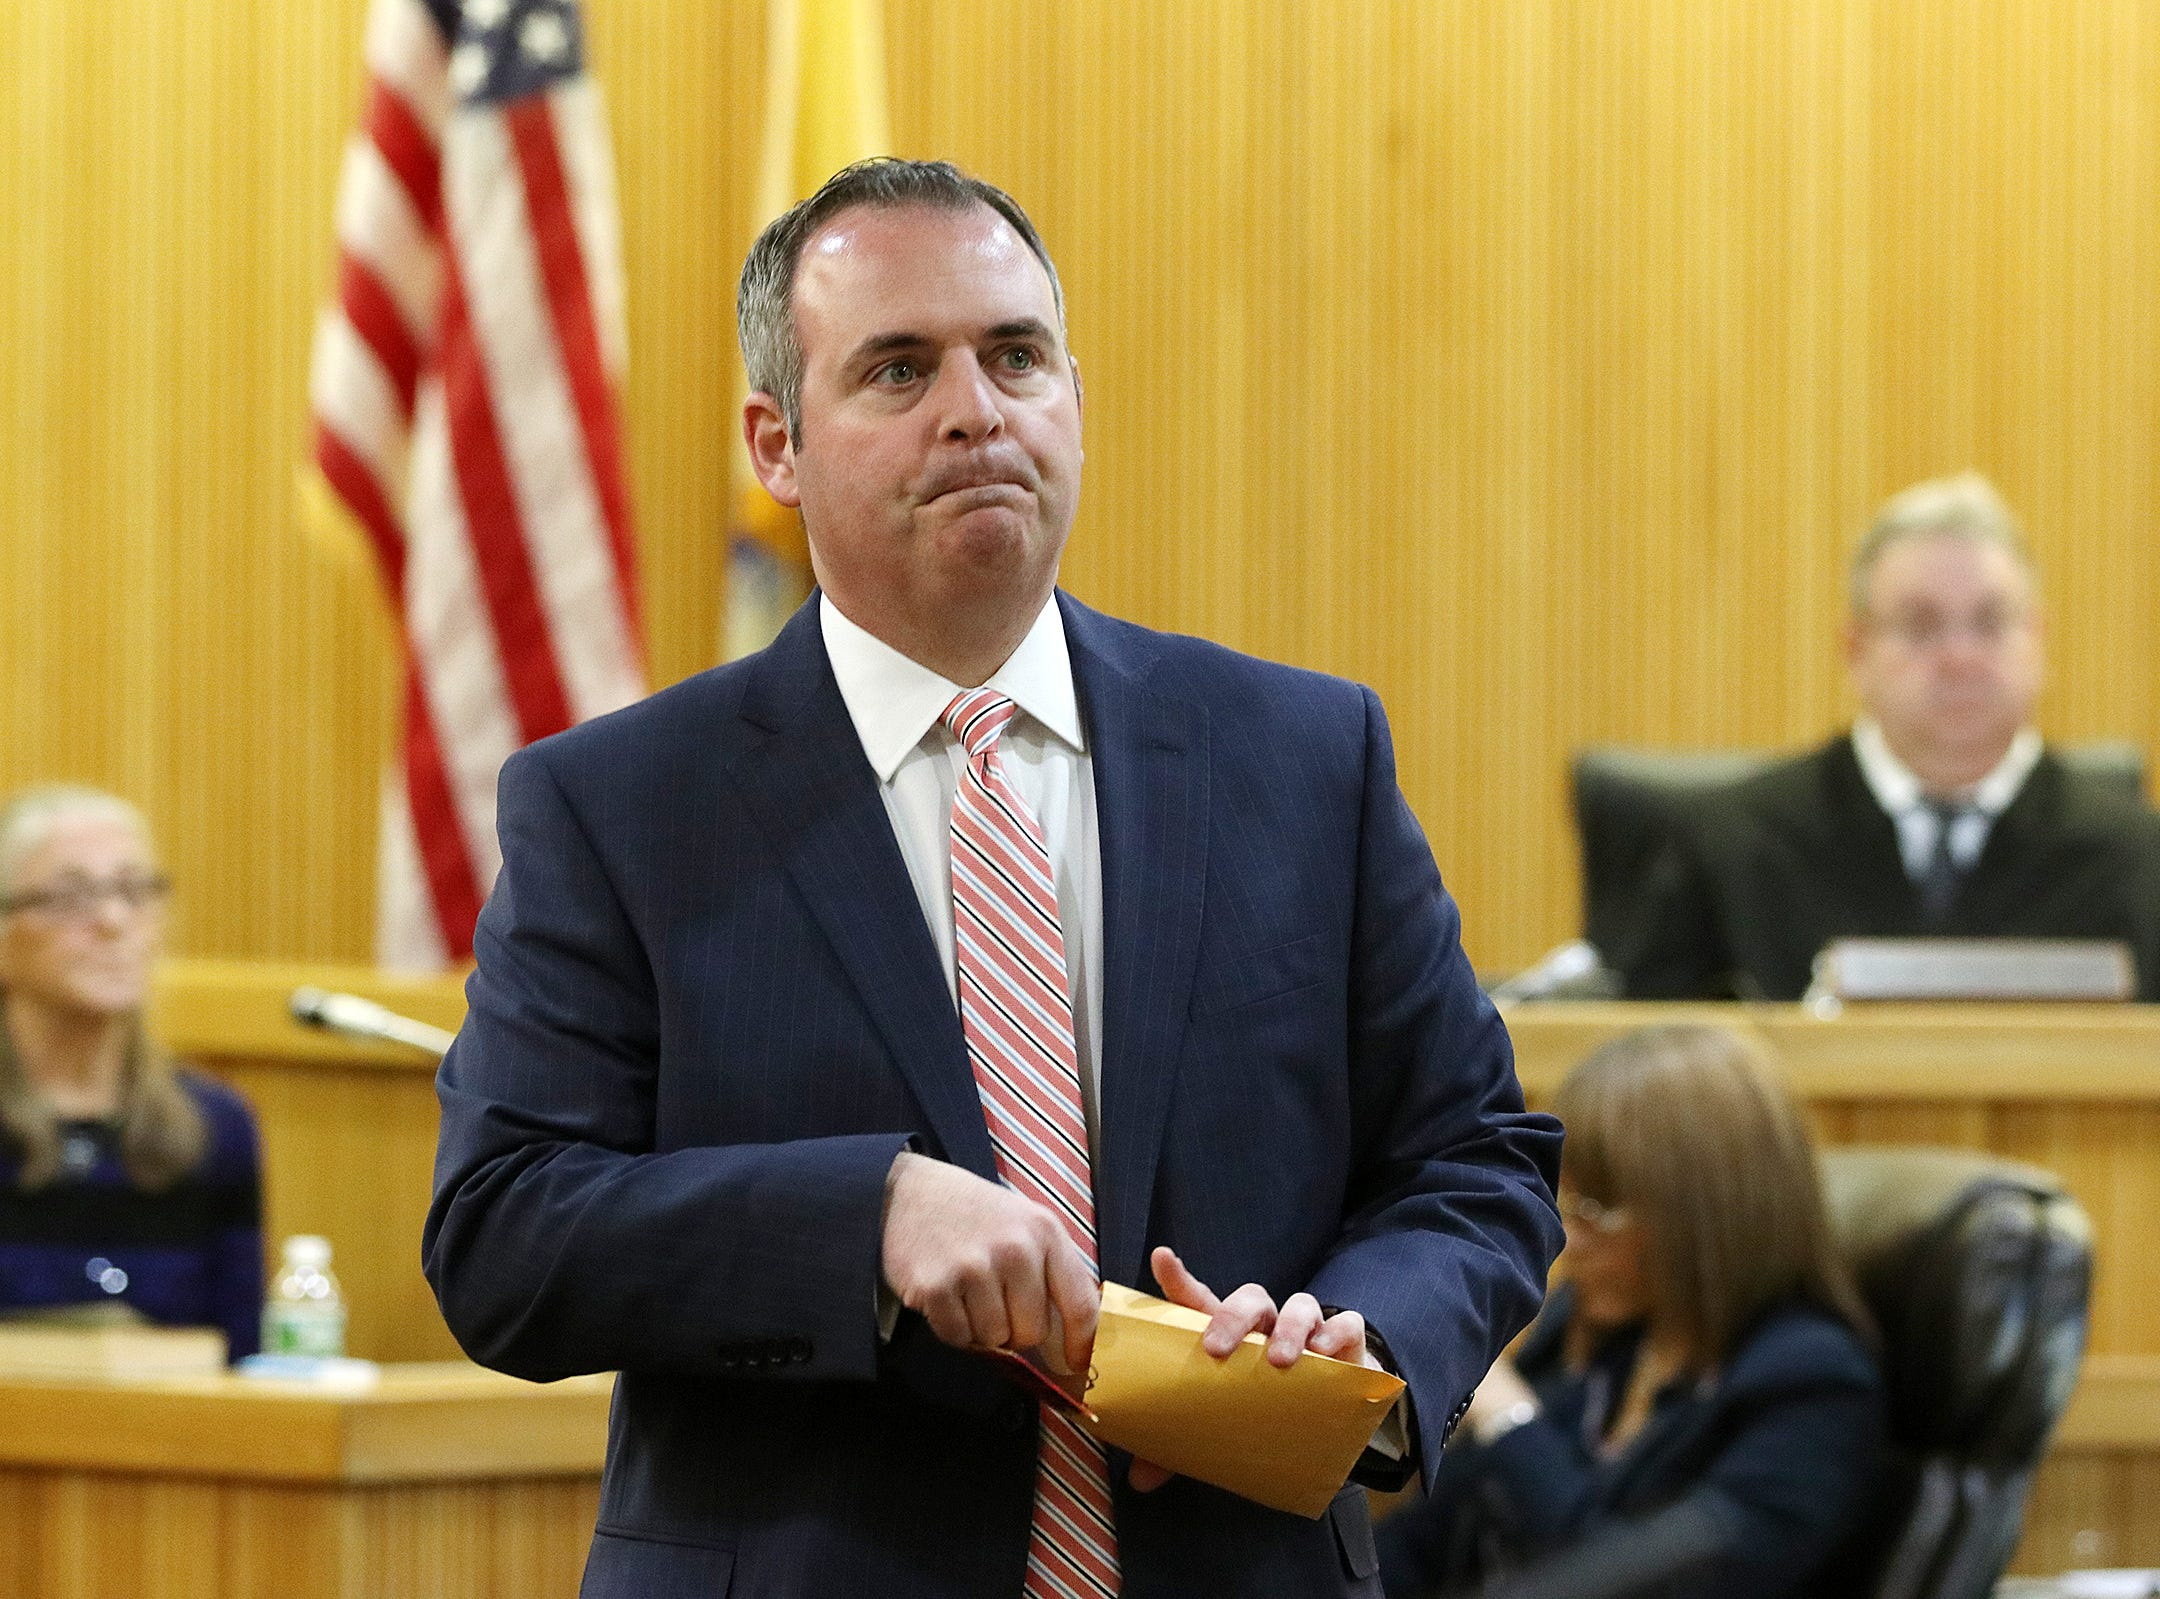 Christopher Decker, Monmouth County assistant prosecutor, shows keys found in Sarah Stern's bedroom by Linda Stitely, Sarah Stern's aunt, as she testifies during the trial of Liam McAtasney, who is charged with the murder of former high school classmate, Sarah Stern, before Superior Court Judge Richard W. English at the Monmouth County Courthouse in Freehold, NJ Wednesday January 30, 2019.